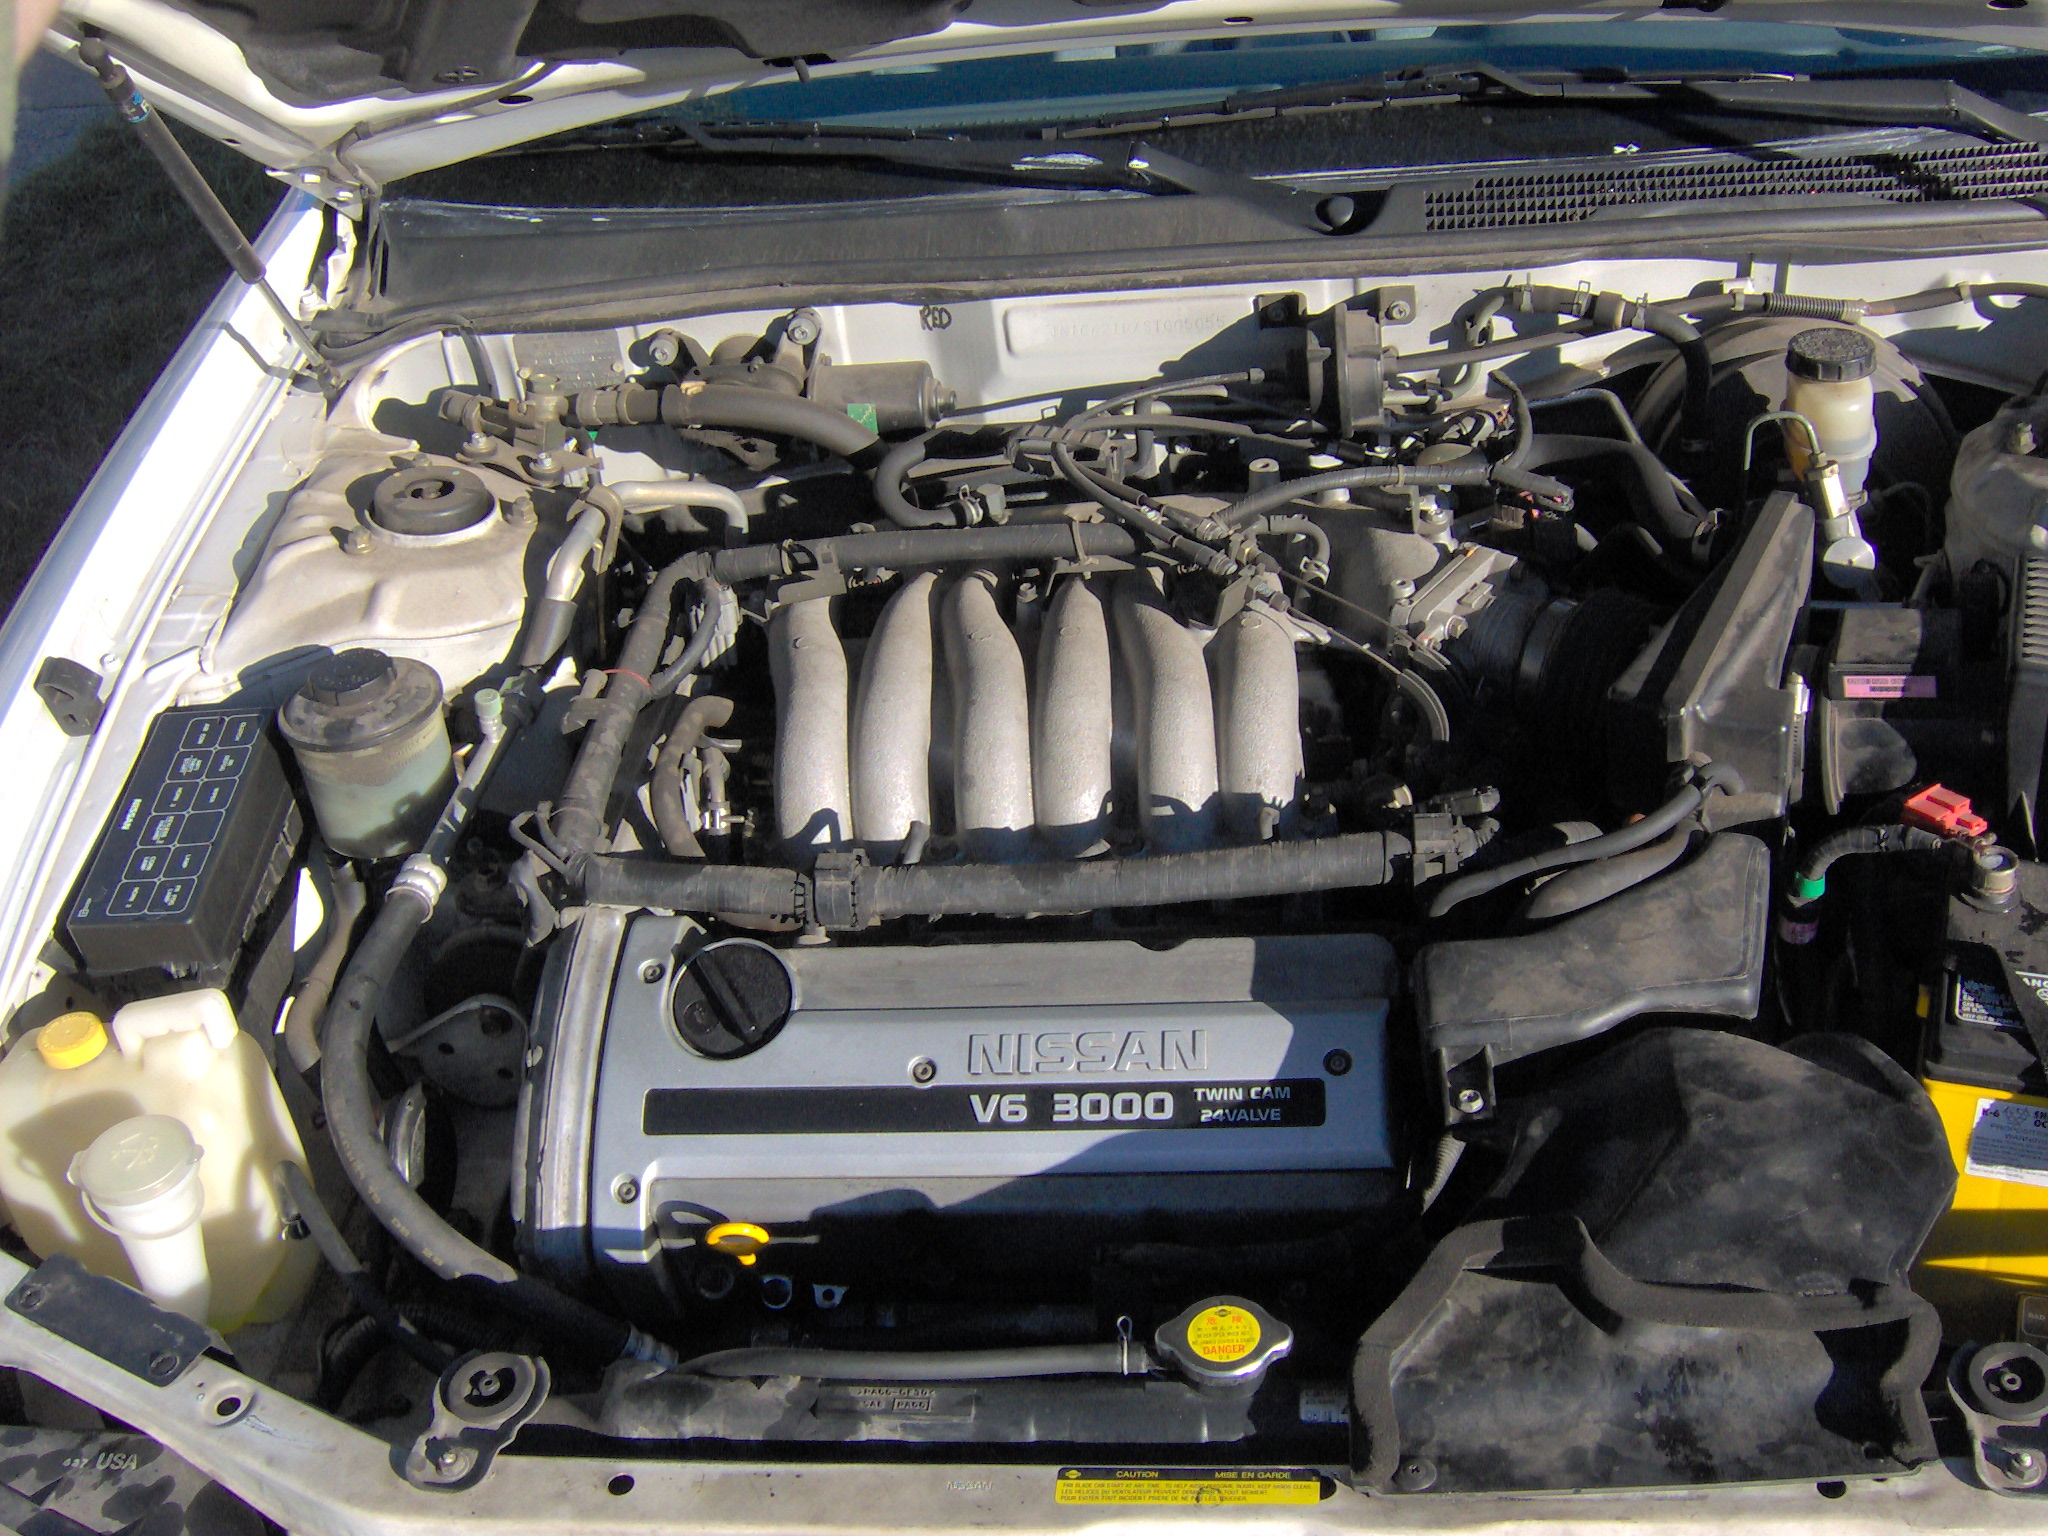 1996 Toyota Corolla Water Pump Location in addition 93 Nissan Sentra Engine Diagram further Viewtopic likewise P 0996b43f80381e3a besides Dodge Stratus 3 0 Thermostat Location. on thermostat location on 1996 nissan sentra